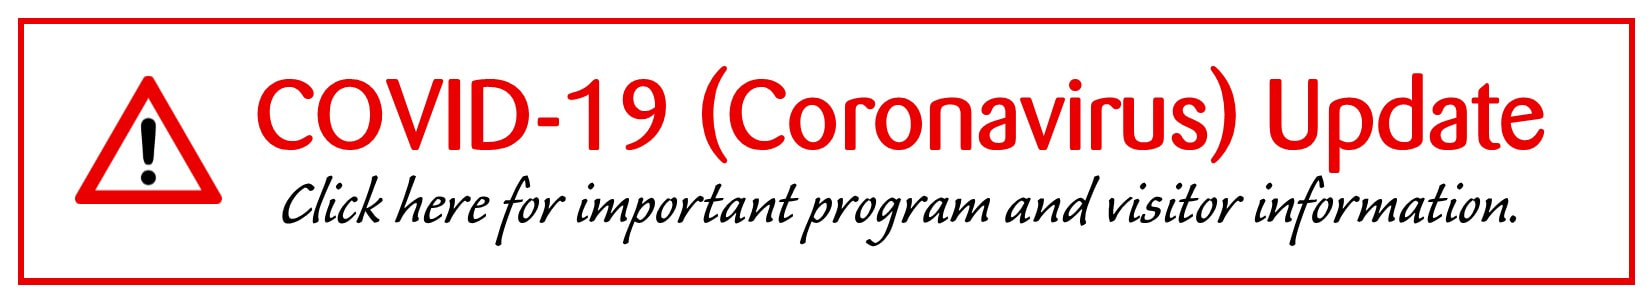 COVID-19 (Coronavirus) Update, Click here for important program and visitor information.